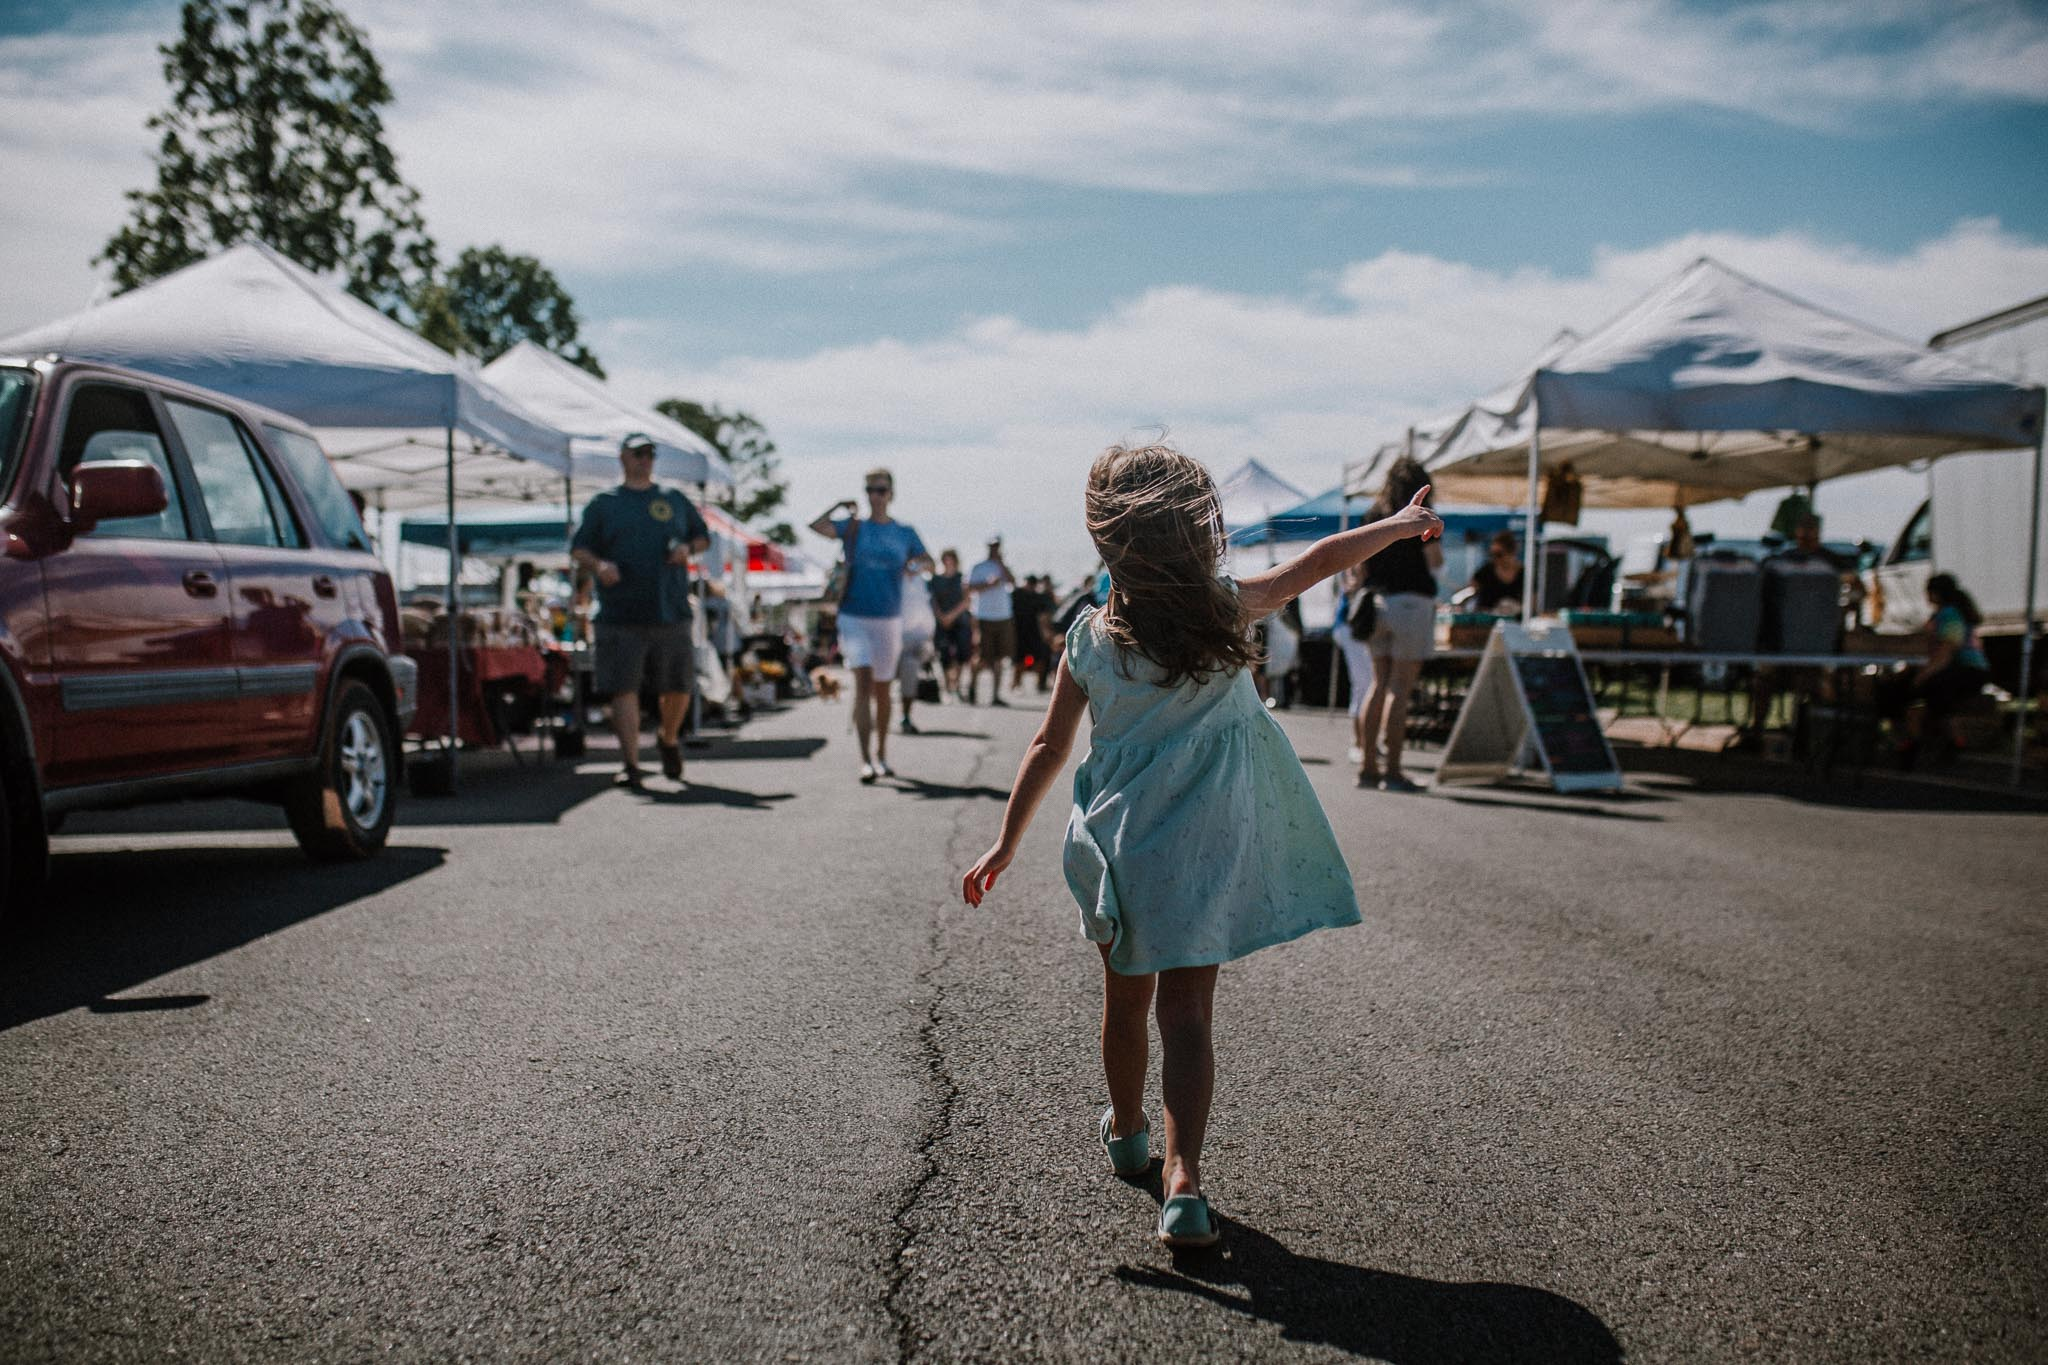 Toddler in a blue dress walking through a Farmer's Market pointing at something in the distance